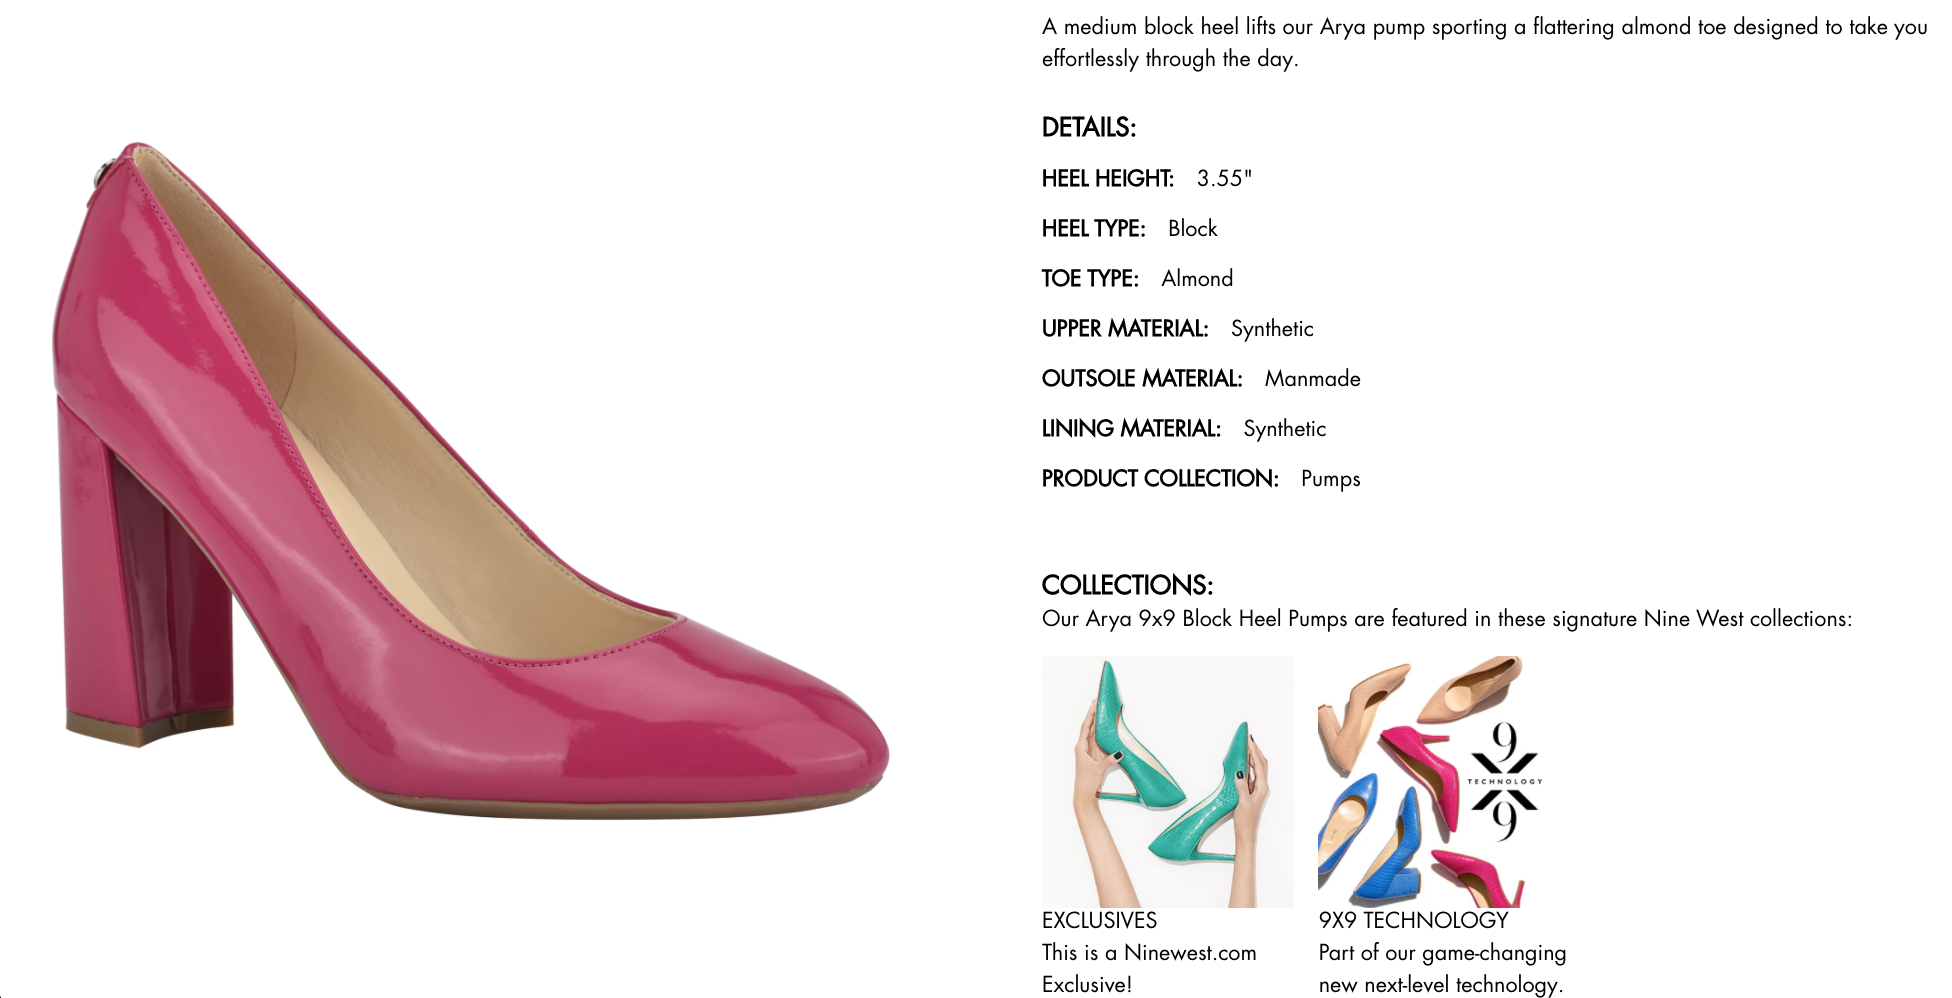 descriptive text on product layout from Nine West